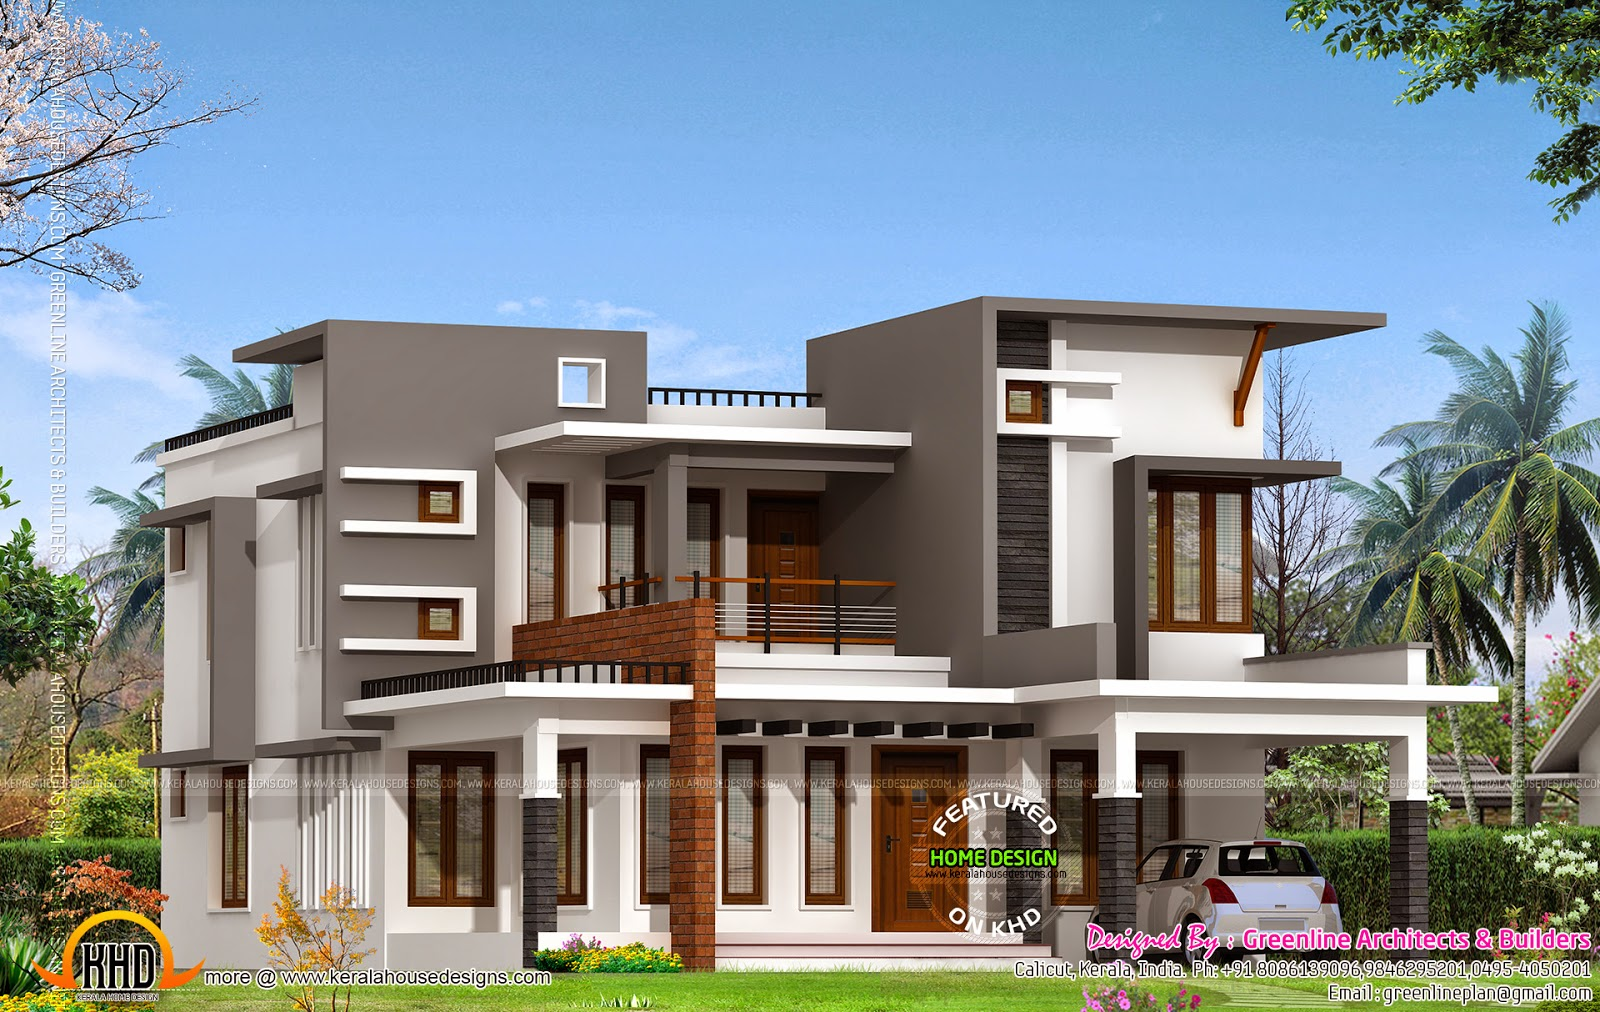 Contemporary house with estimate cost 28 lakhs kerala for Home floor plans with estimated cost to build